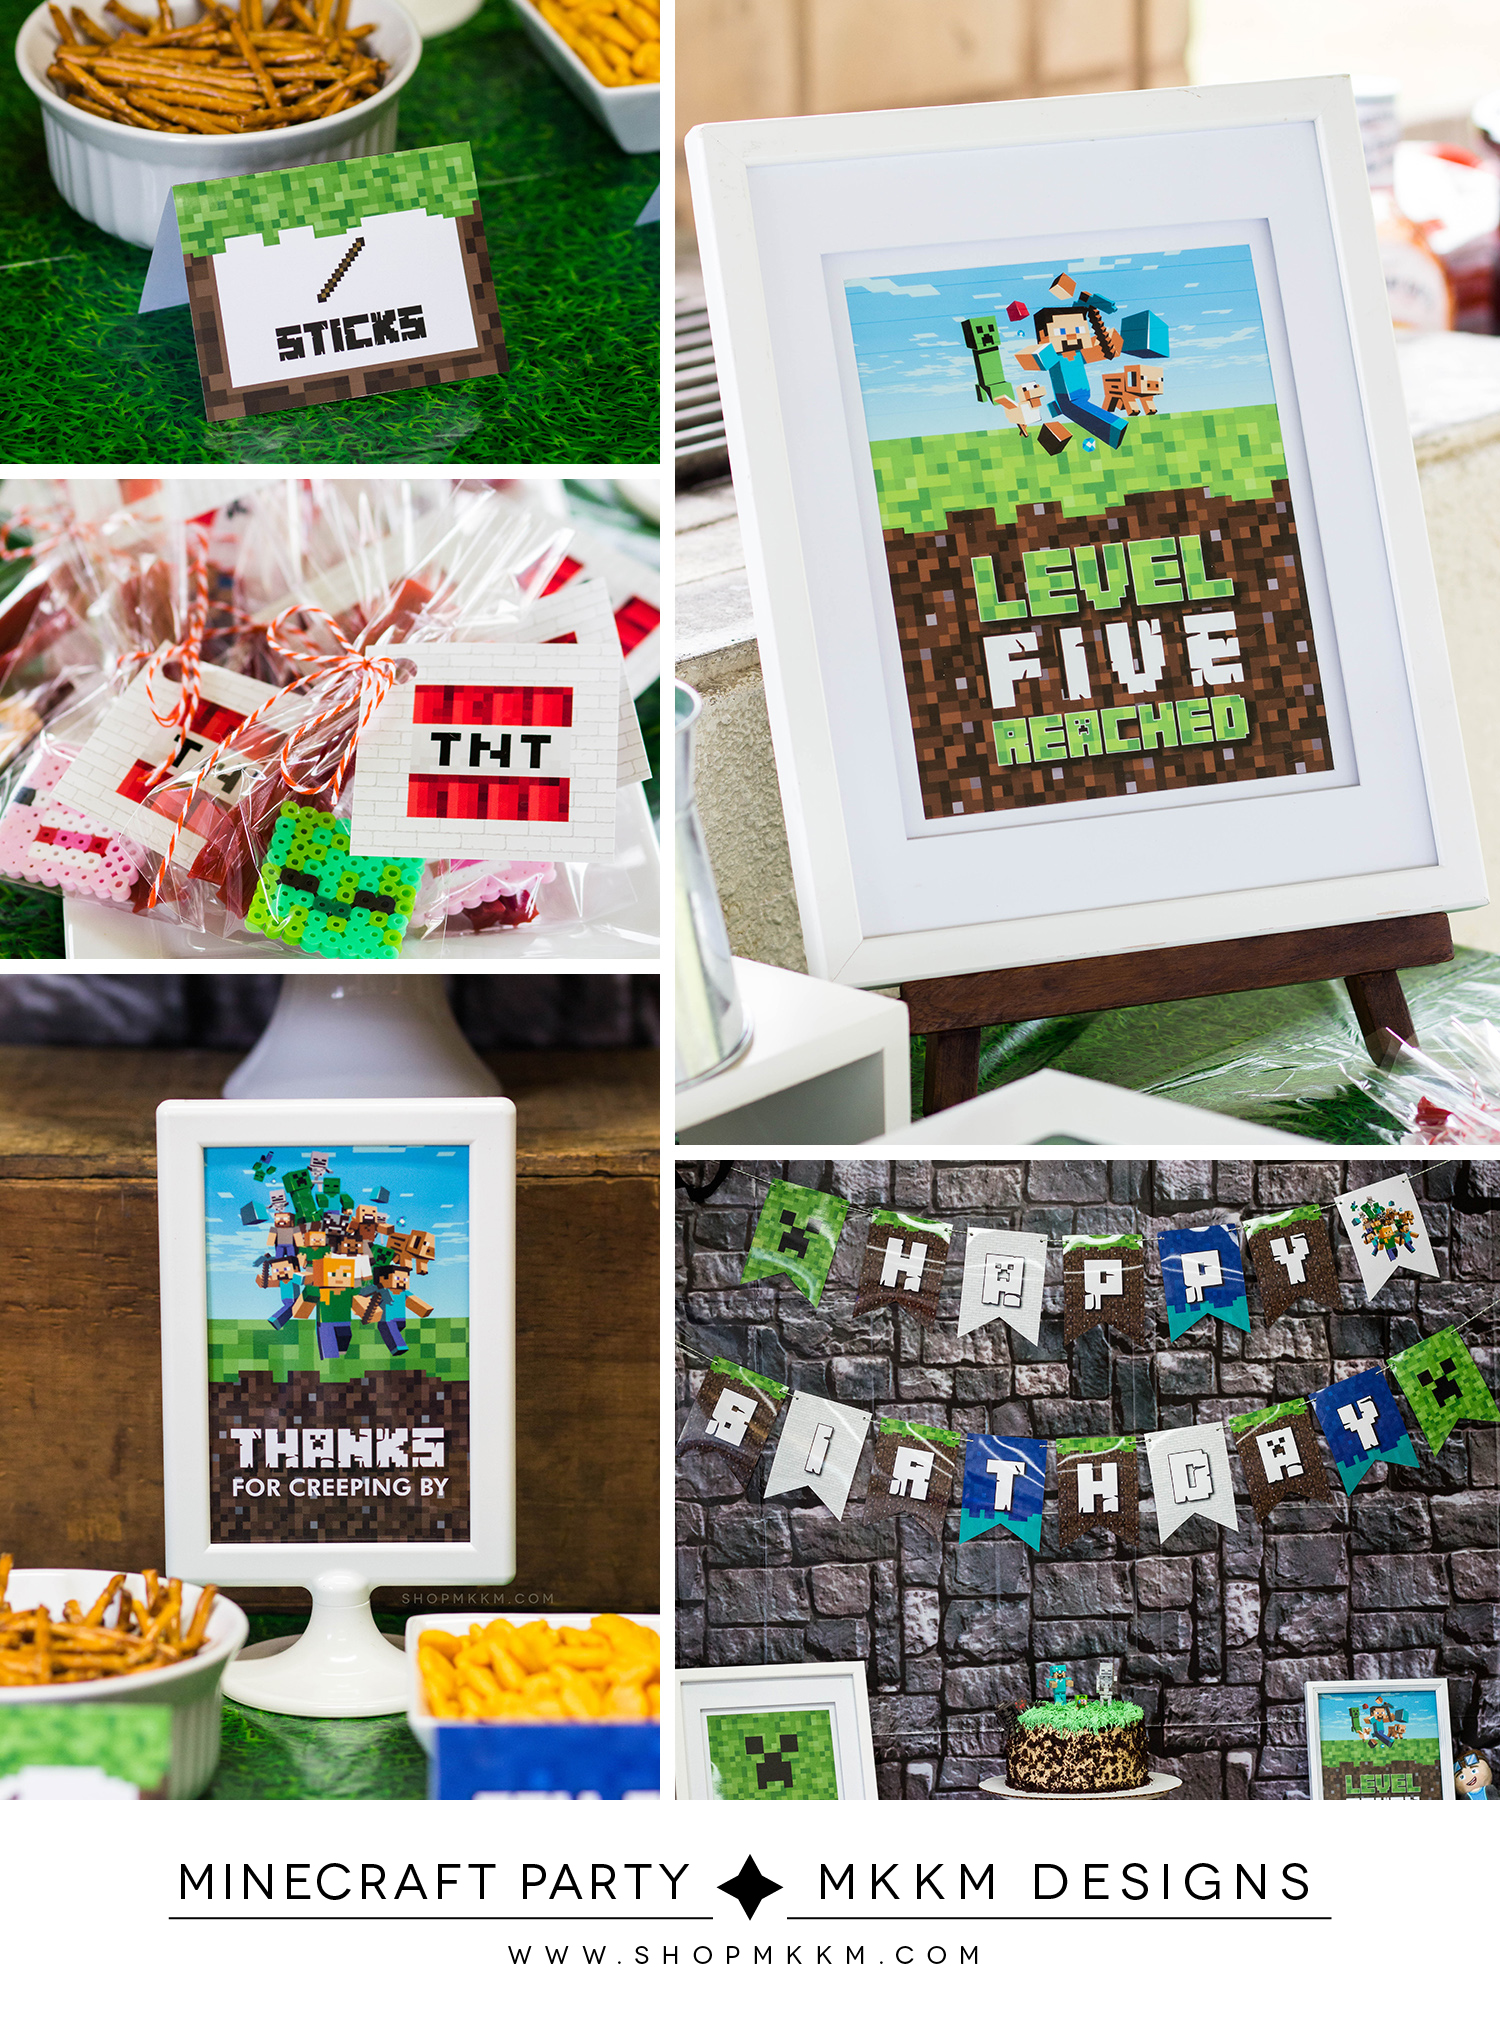 Minecraft party decor and free printables from MKKM Designs